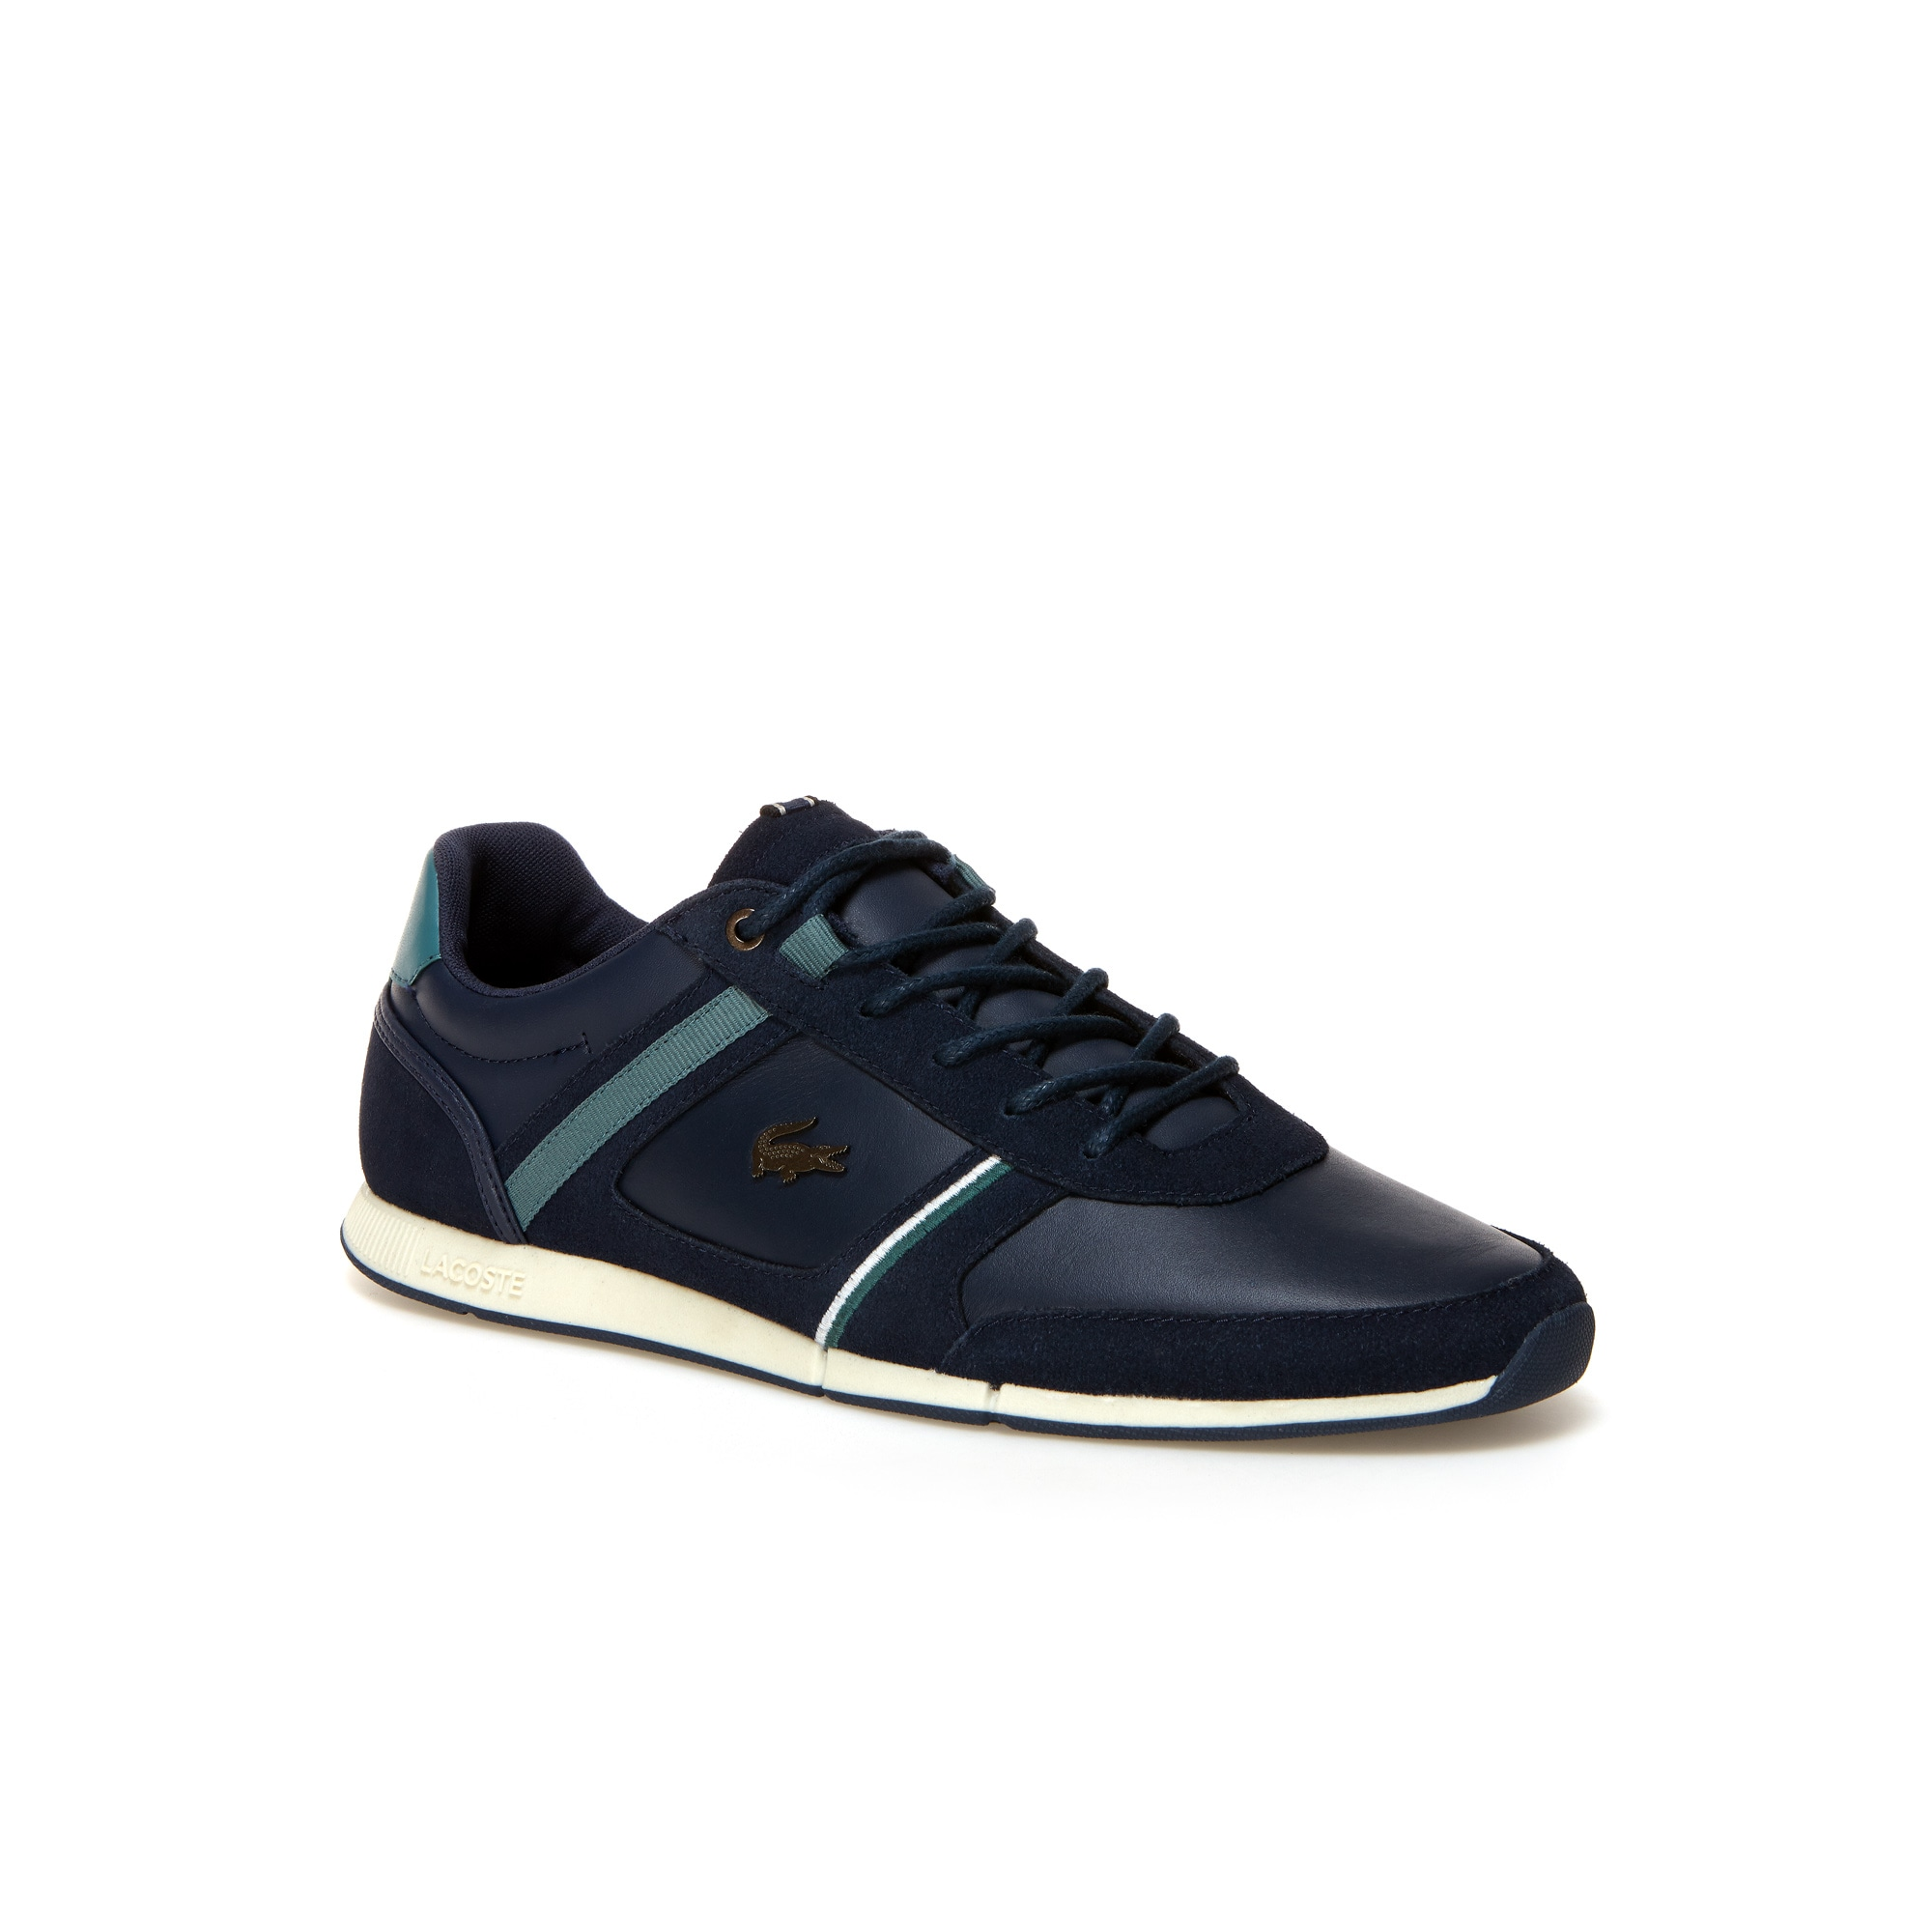 Sneakers Menerva in pelle